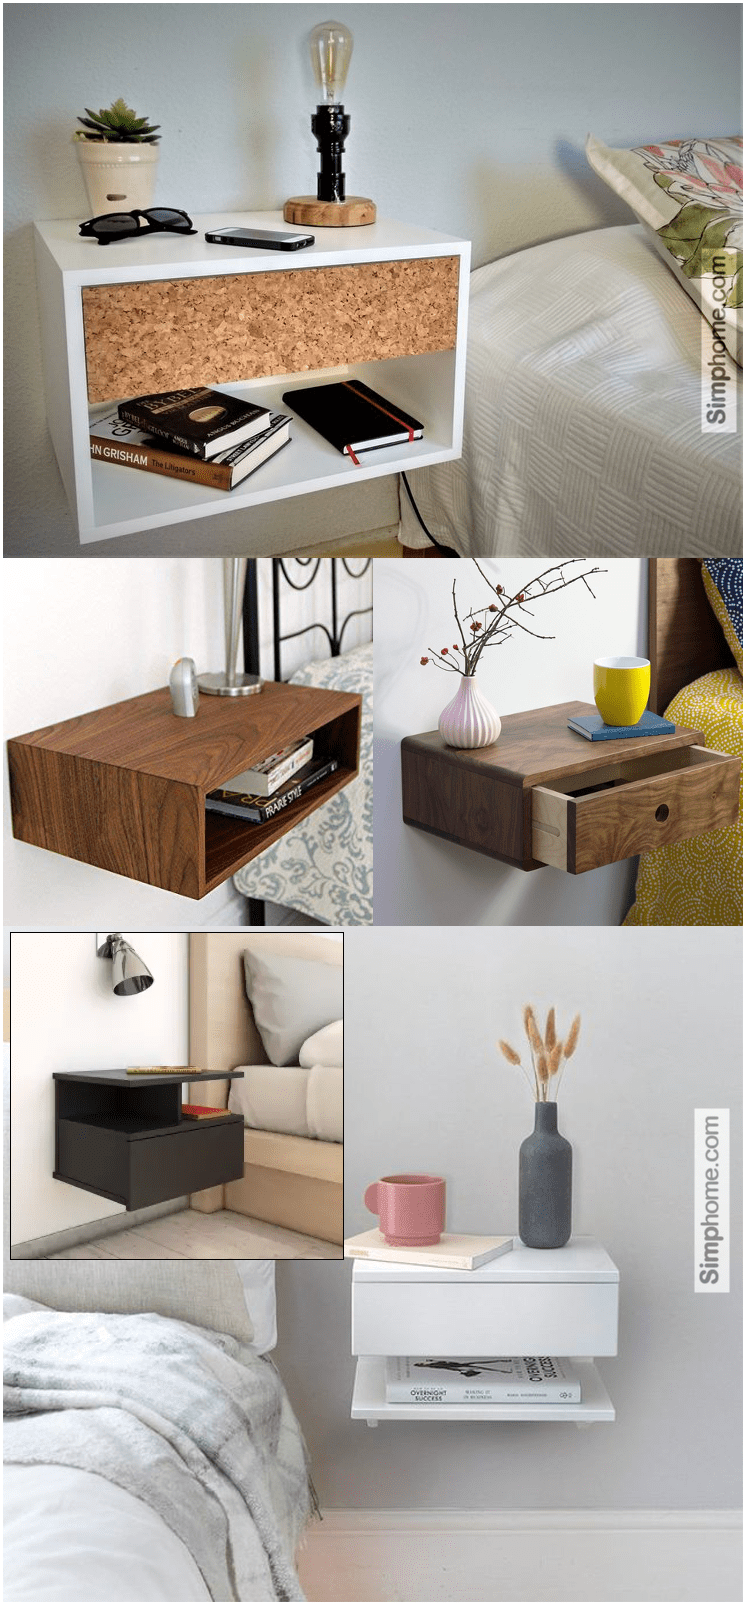 2.Floating Nightstand Ideas by Simphome.com